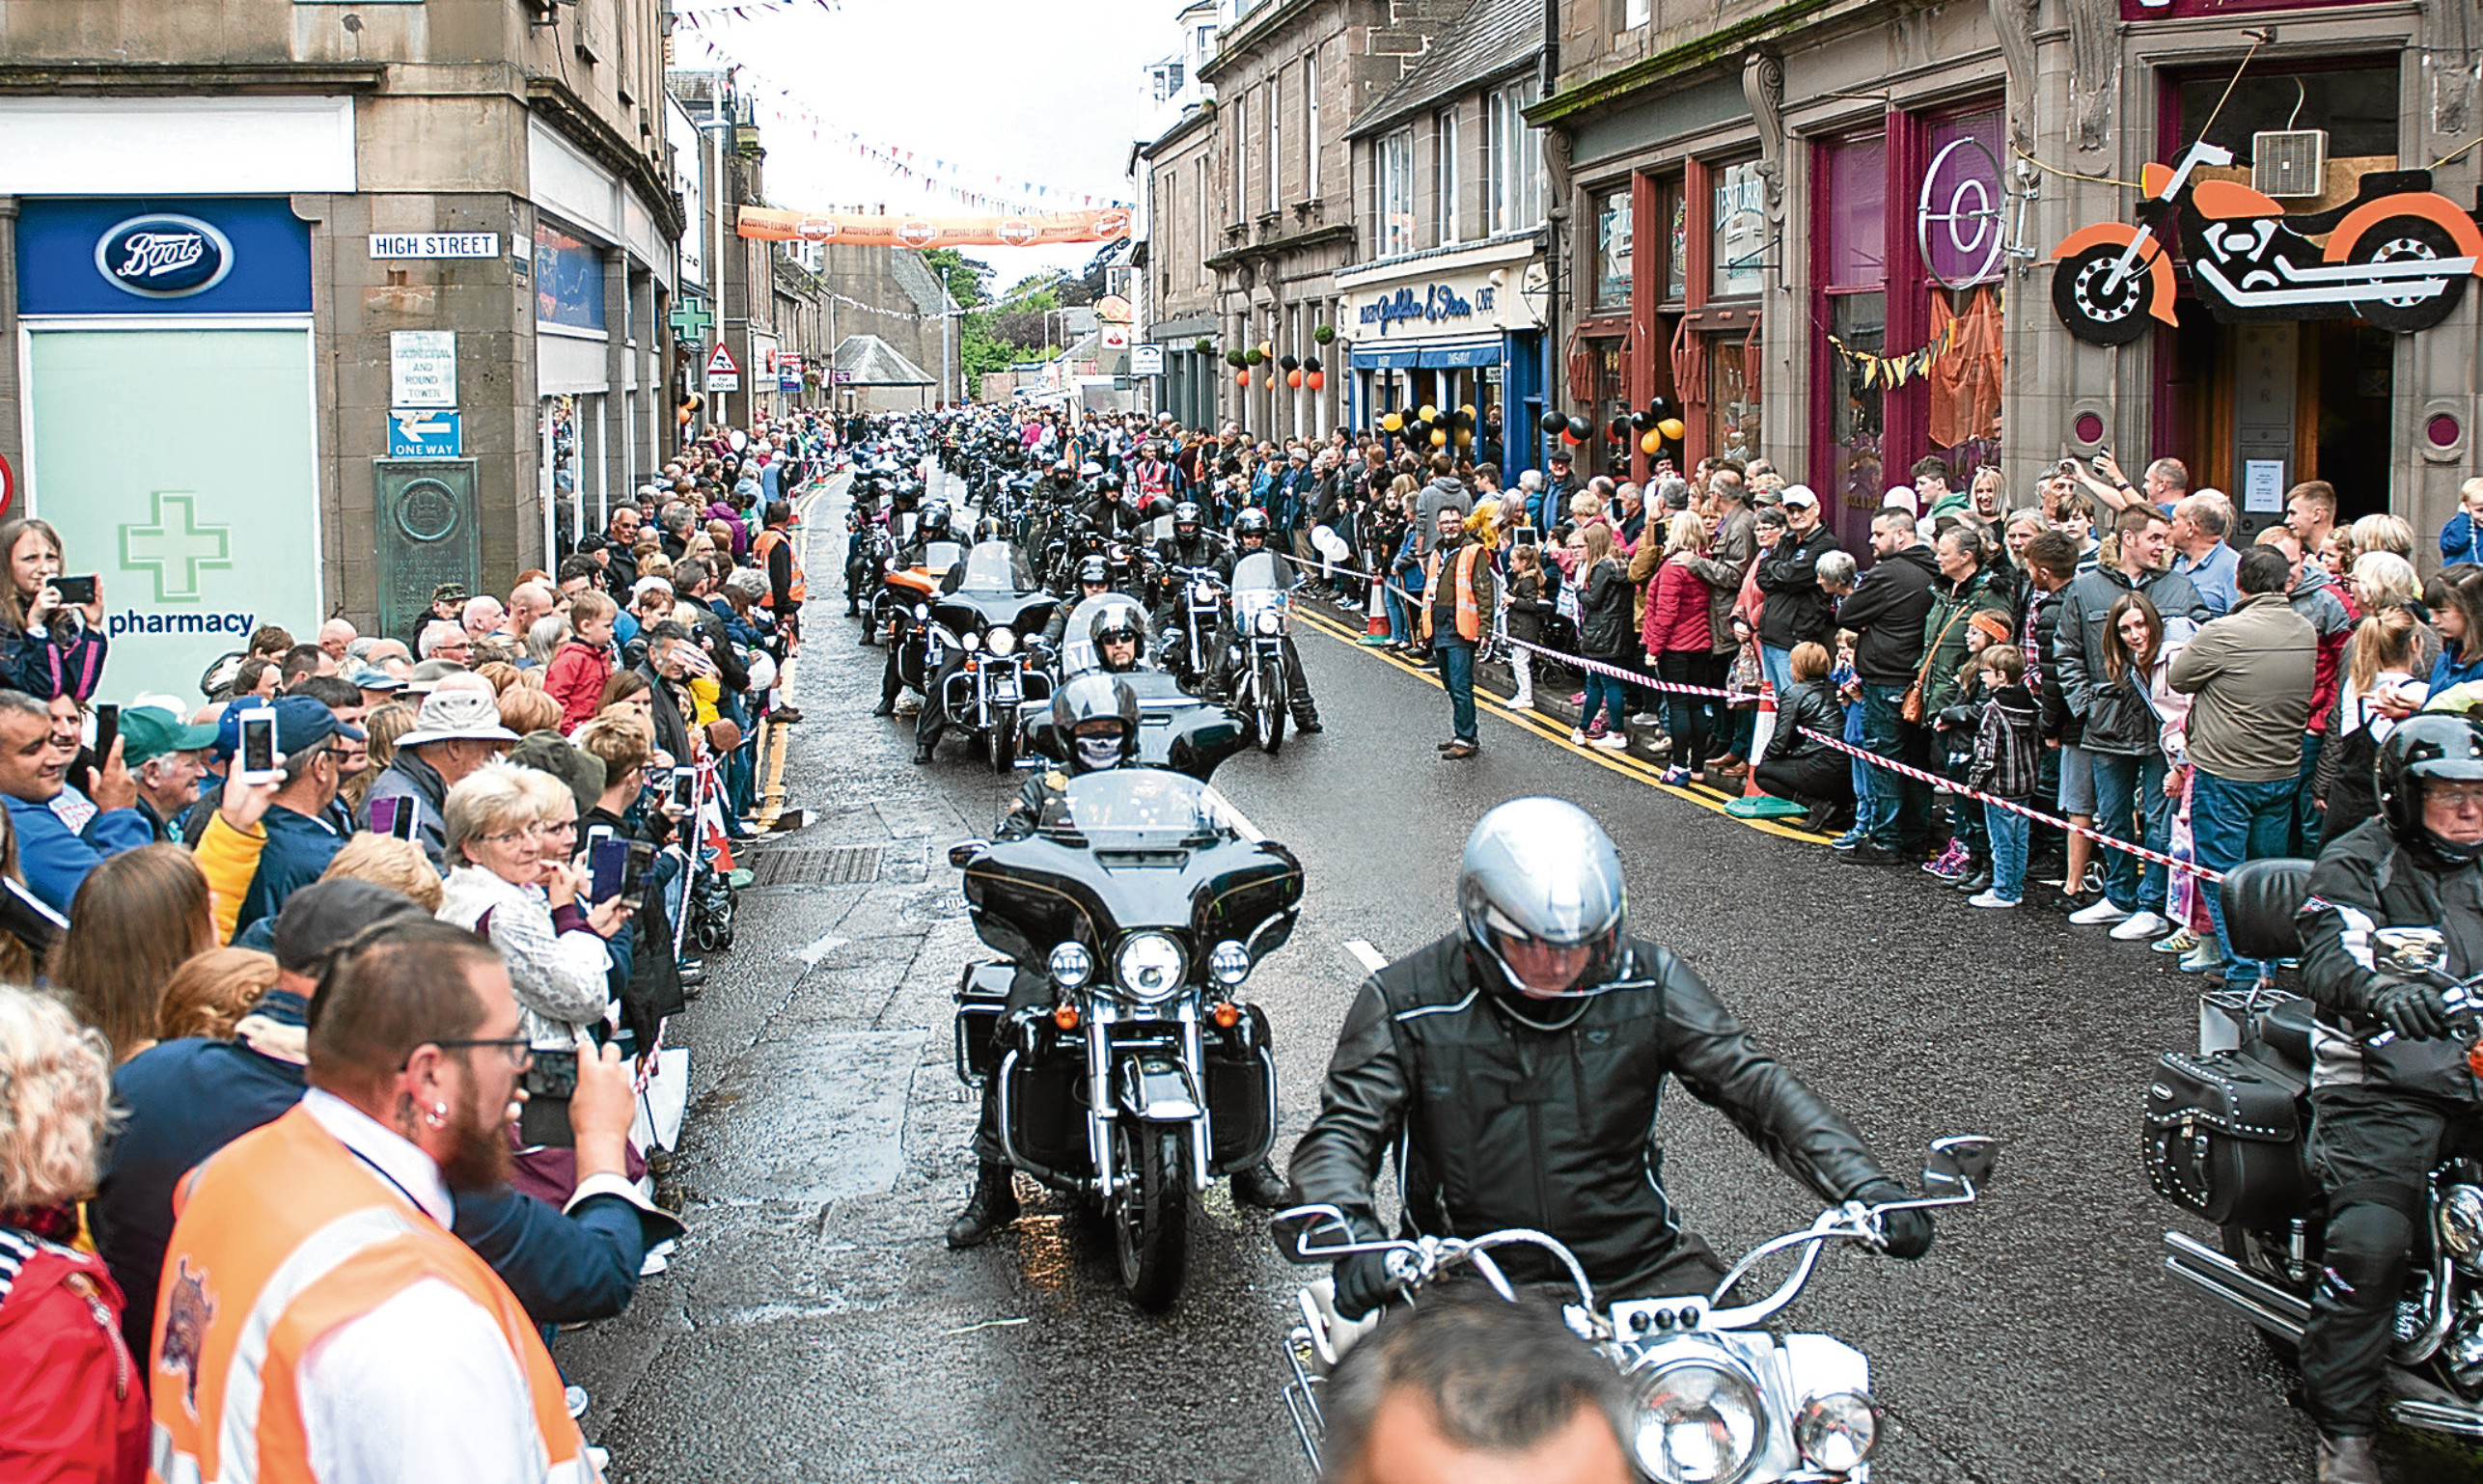 The Thunder Run through Brechin is a highlight of the festival